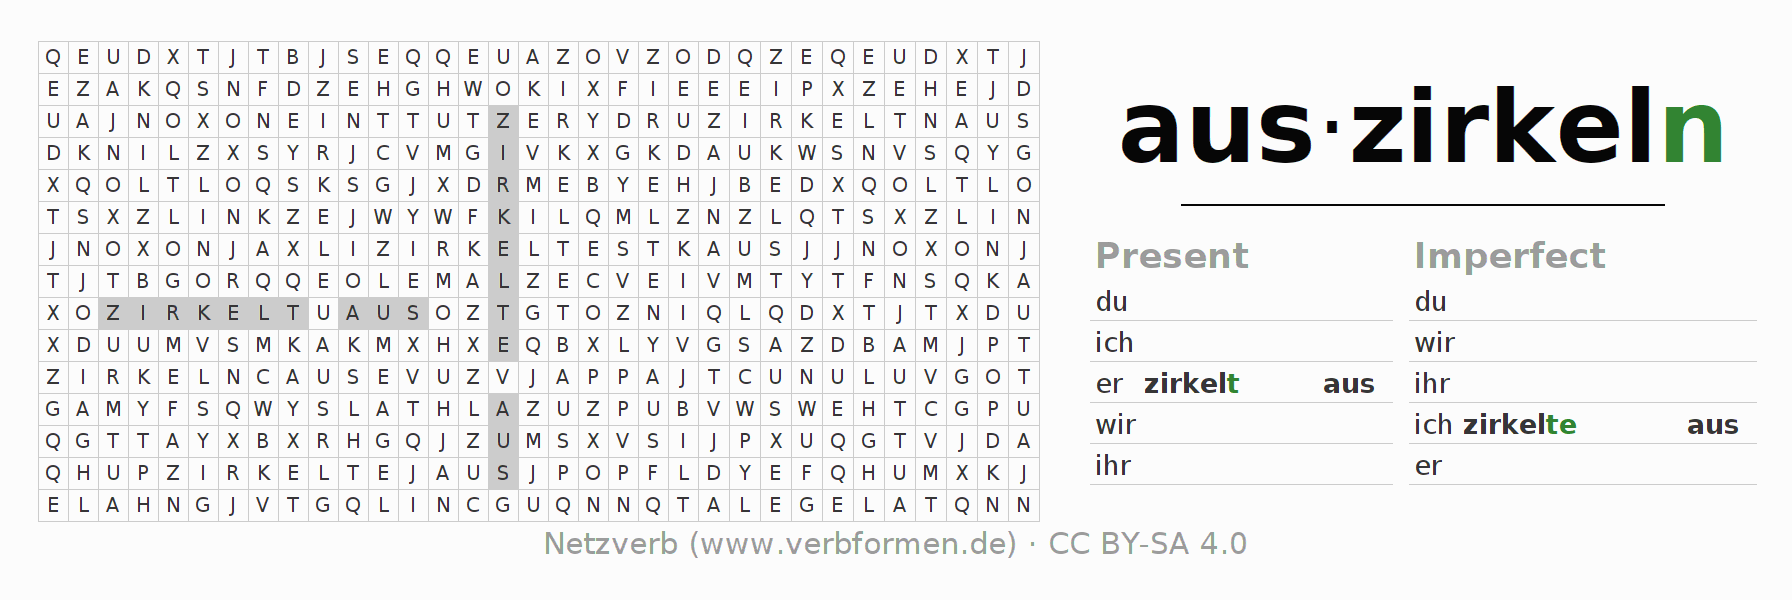 Word search puzzle for the conjugation of the verb auszirkeln